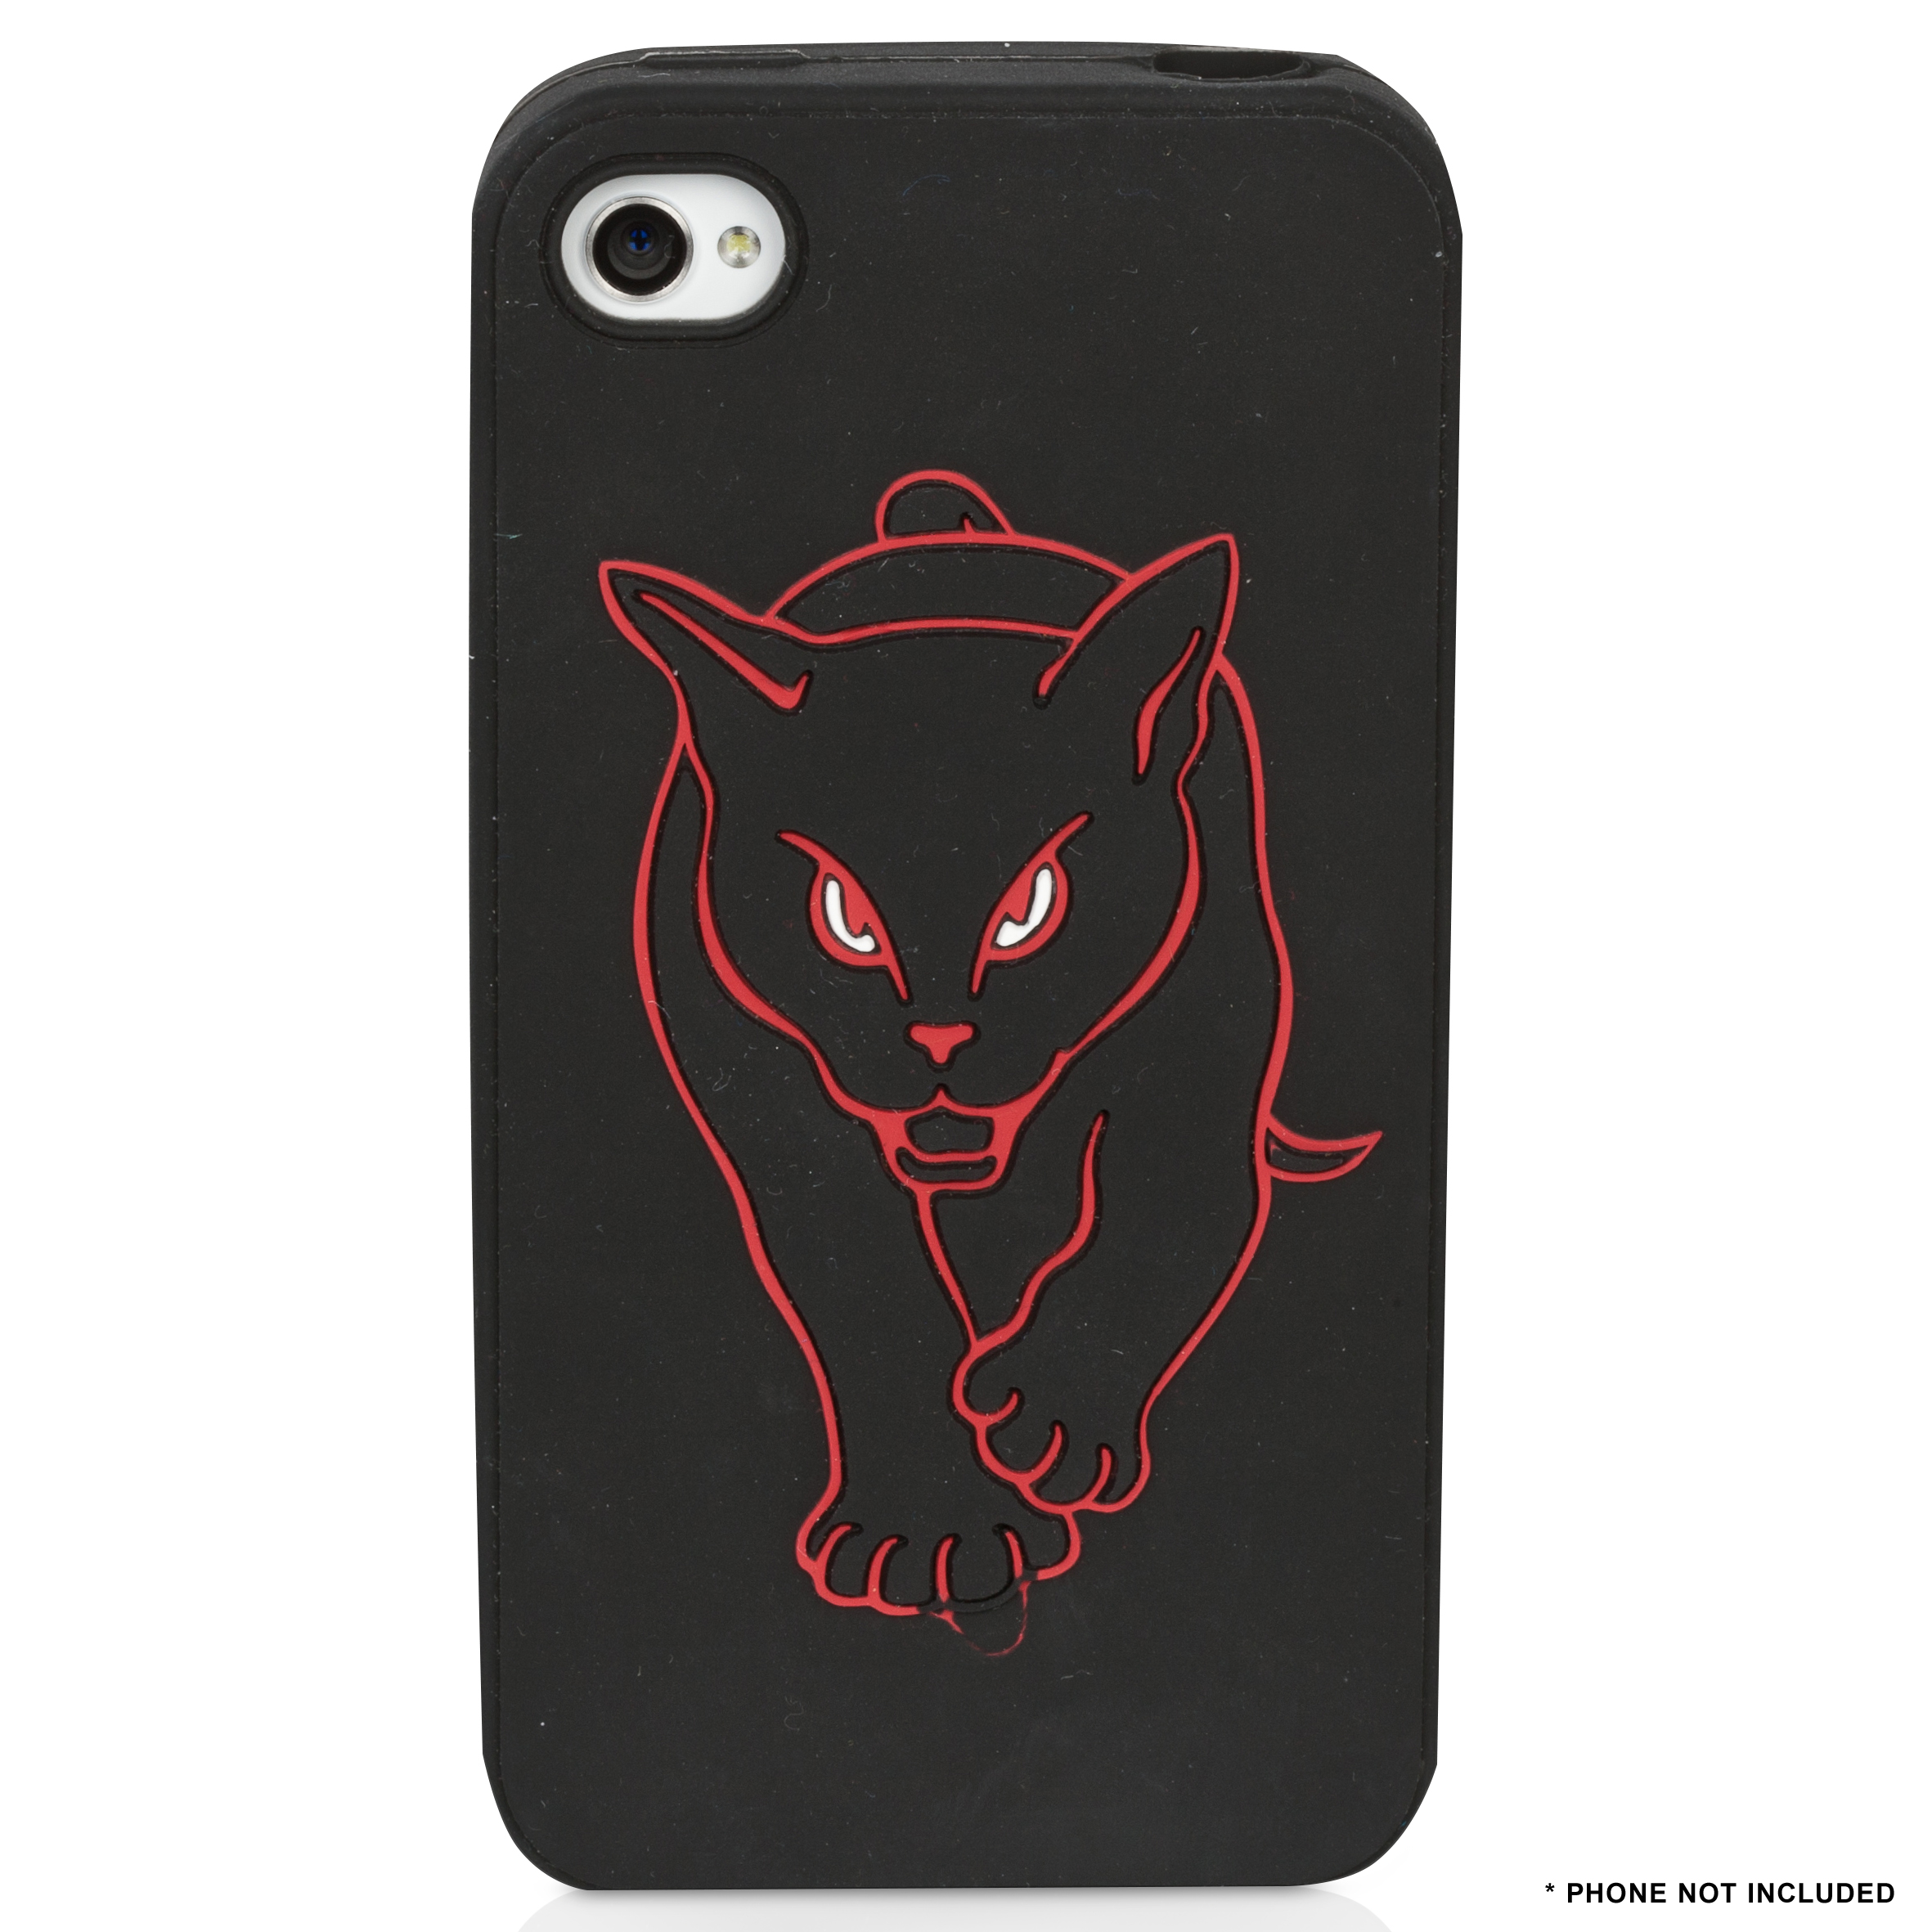 Sunderland Black Cat iphone 4th Generation Silicon Skin